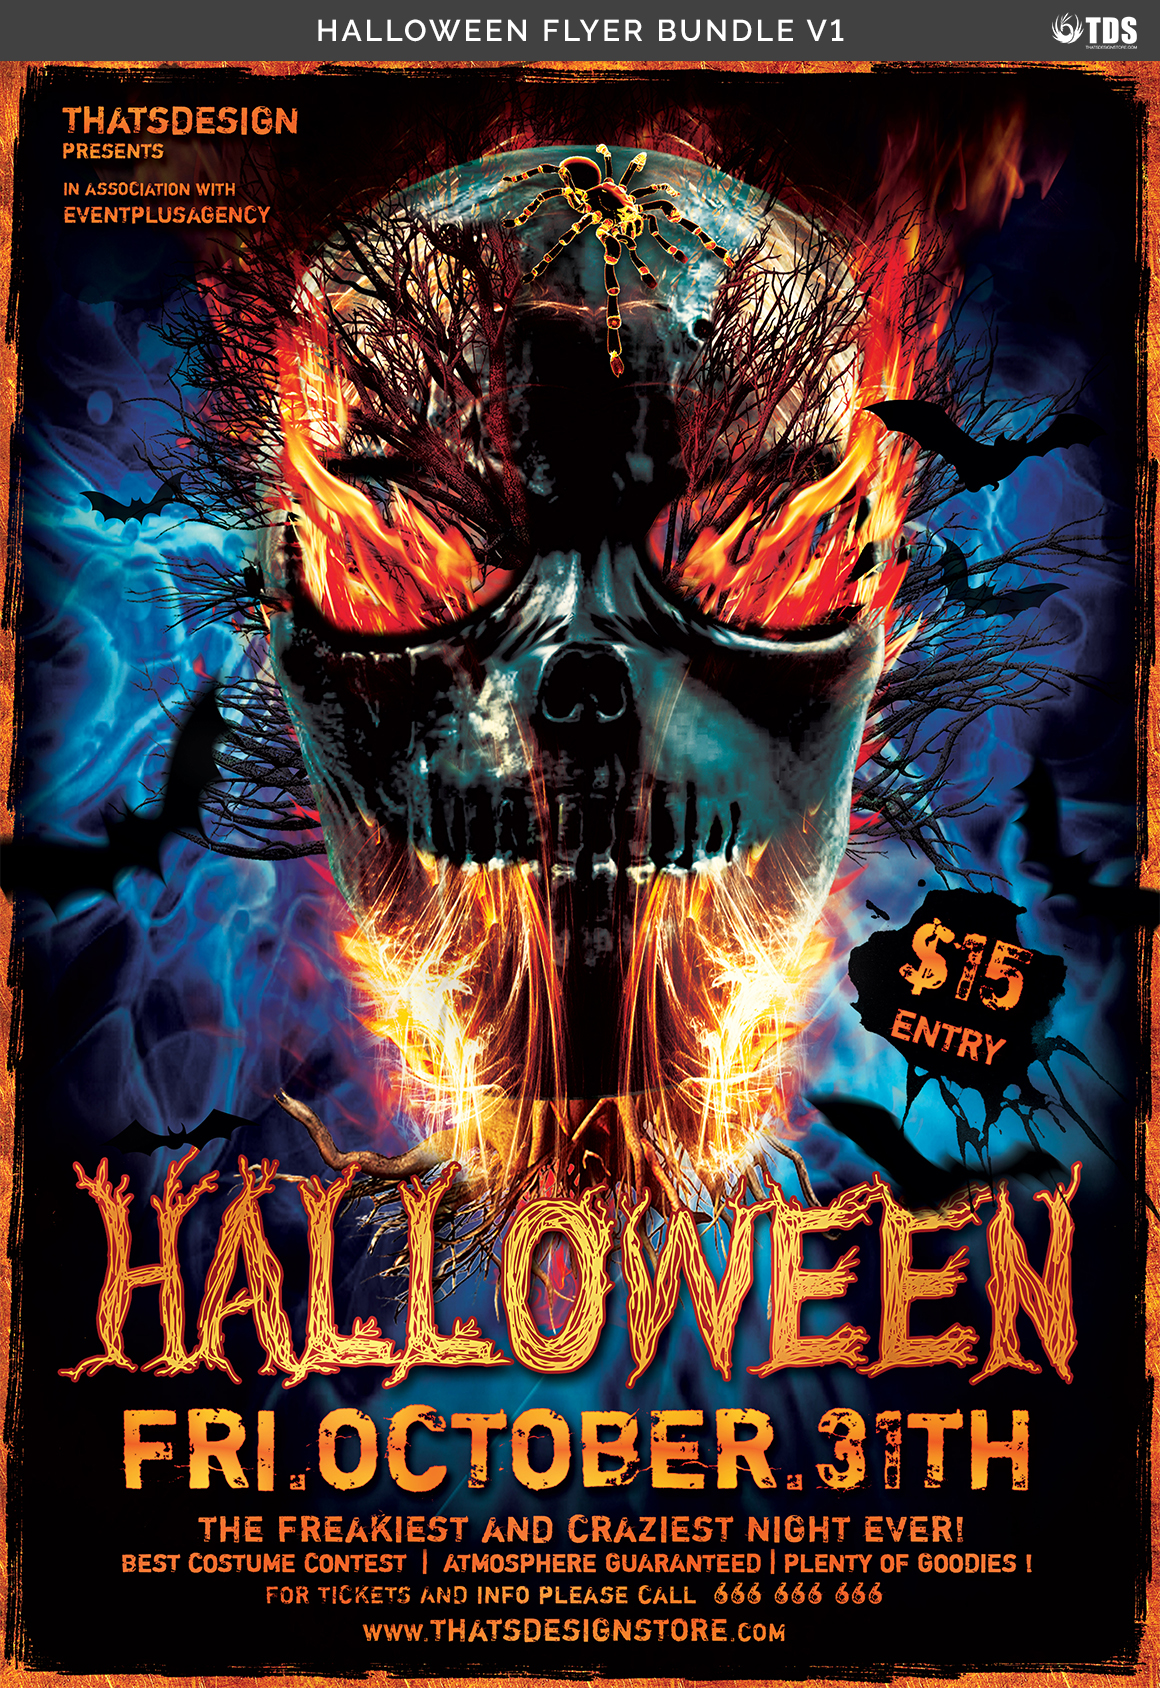 halloween flyer bundle v1